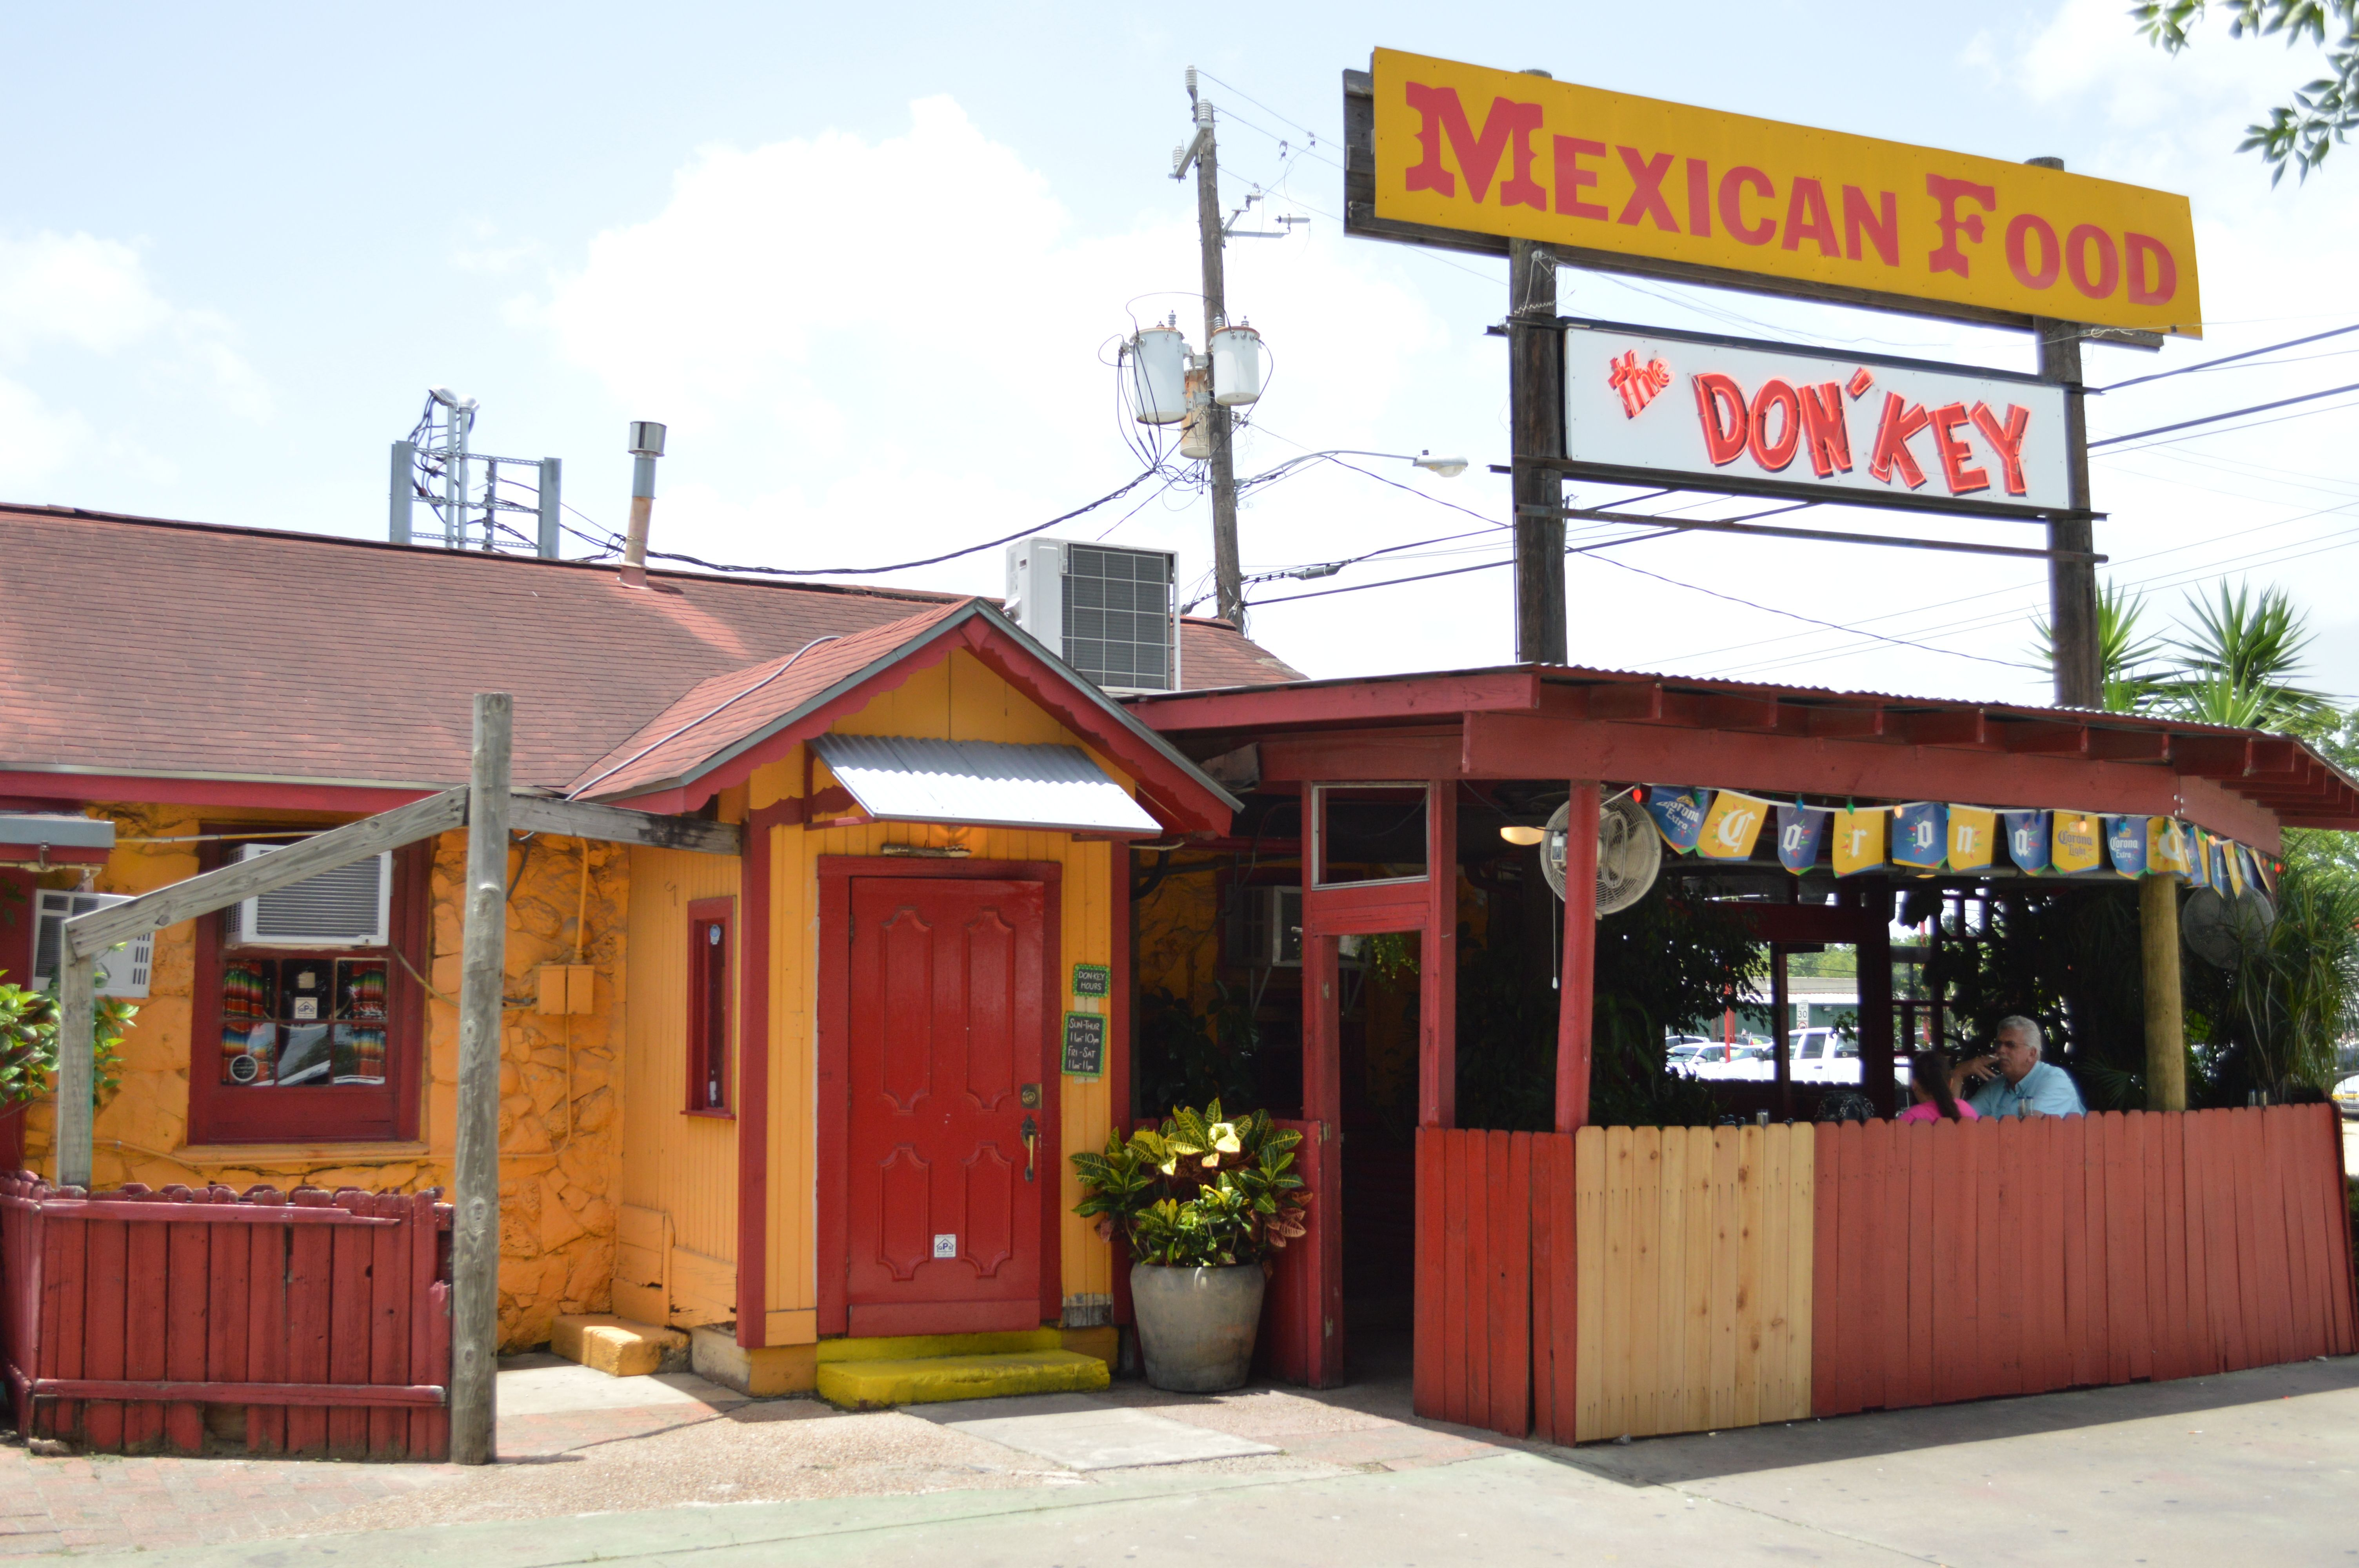 The Don Key Mexican Food Pasadena Tx Bay Area Houston Restaurants